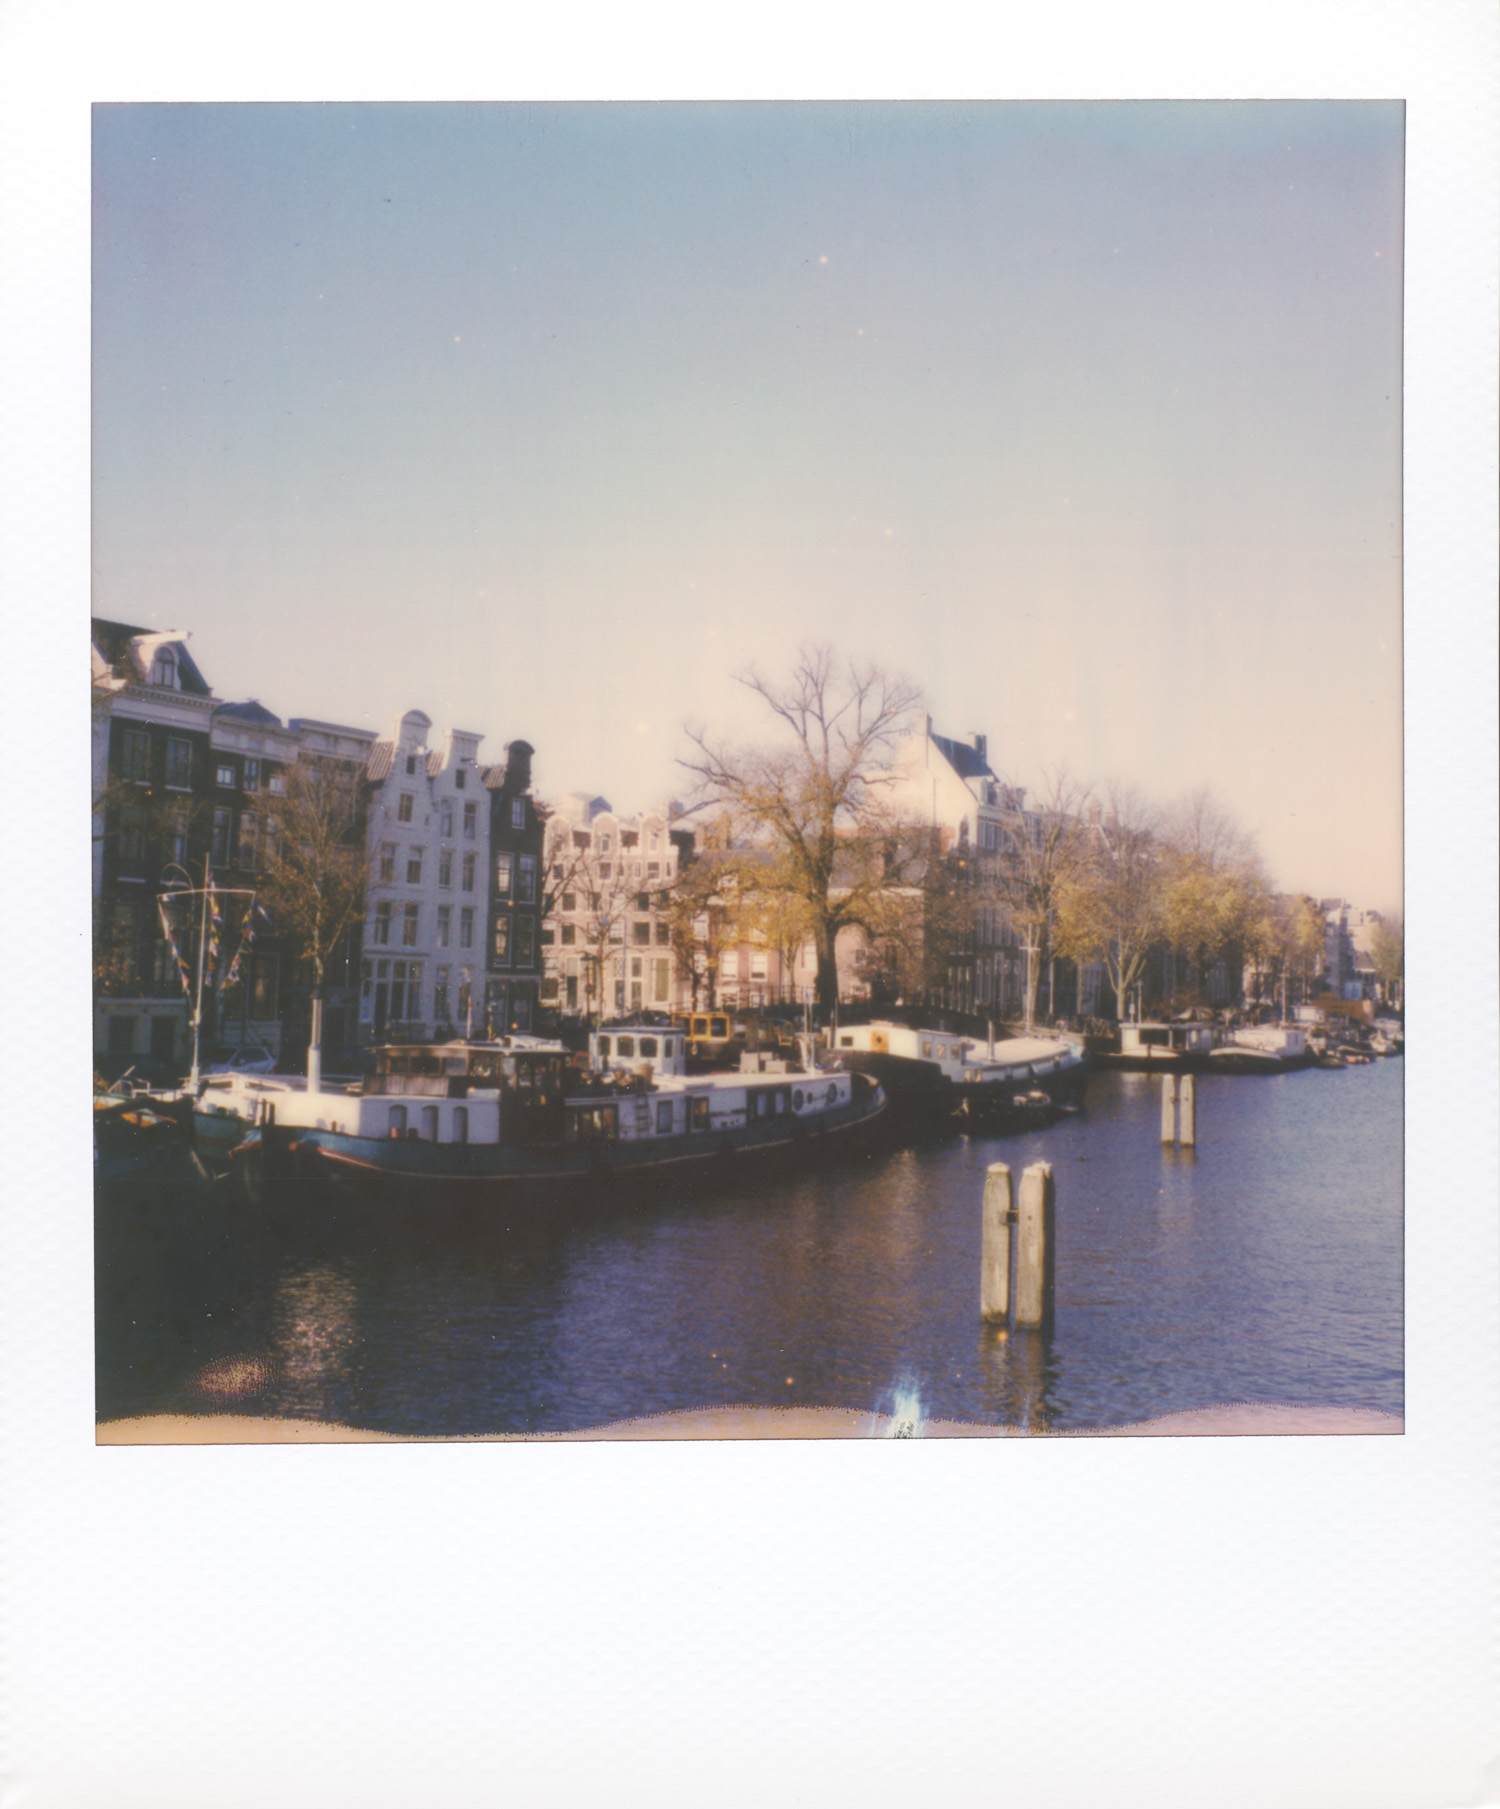 New_York_+_Amsterdam_Cityscape_by_On_a_hazy_morning001.jpg